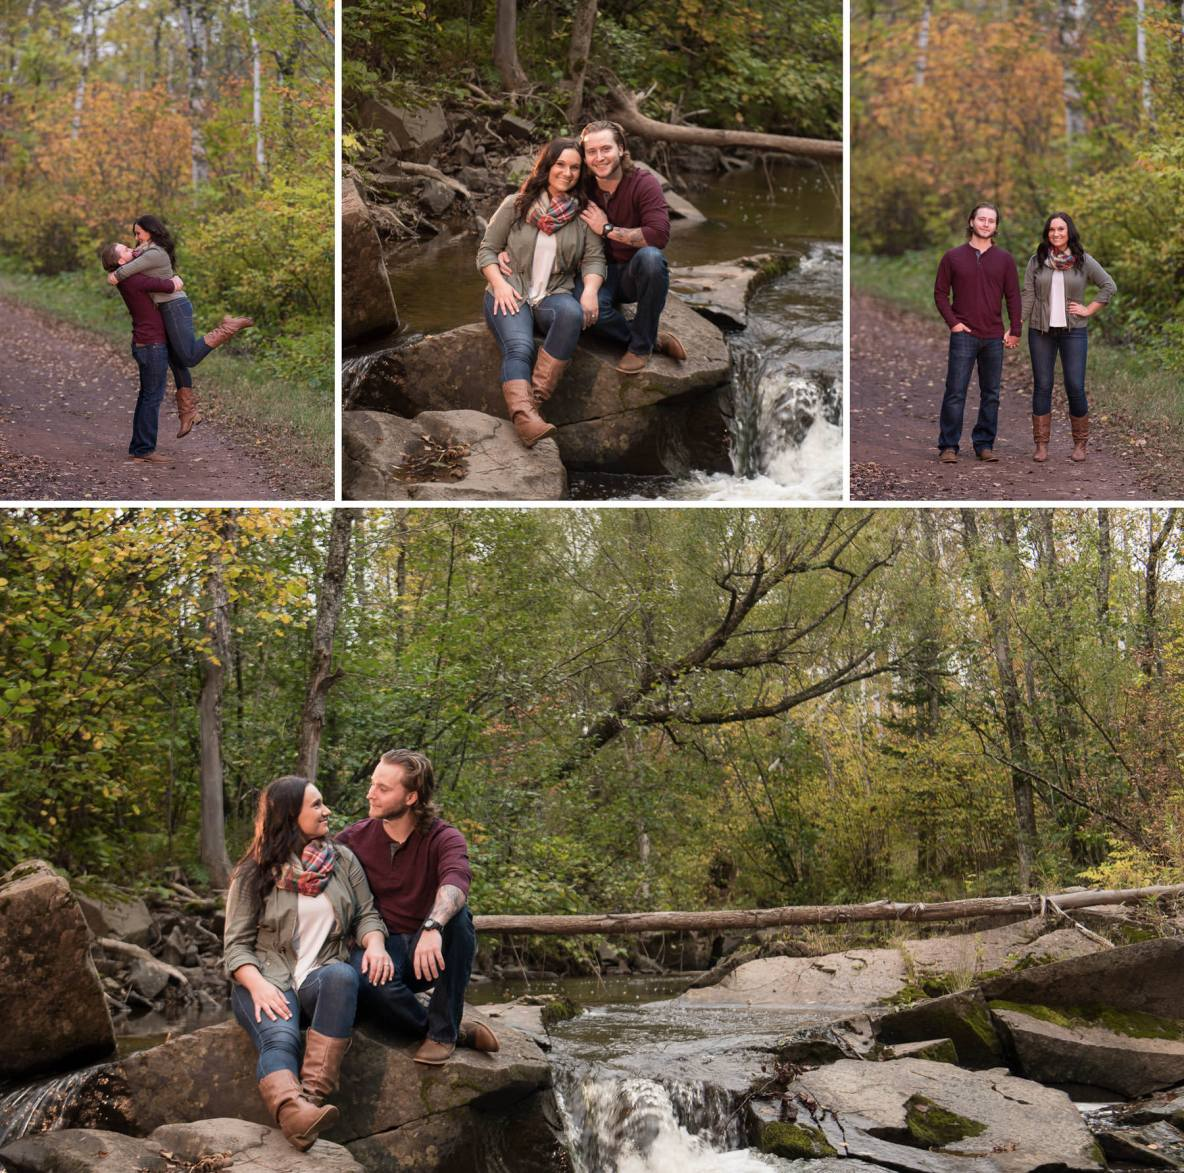 Engagement photos at Hawk Ridge and Amity Creek in Duluth, MN.